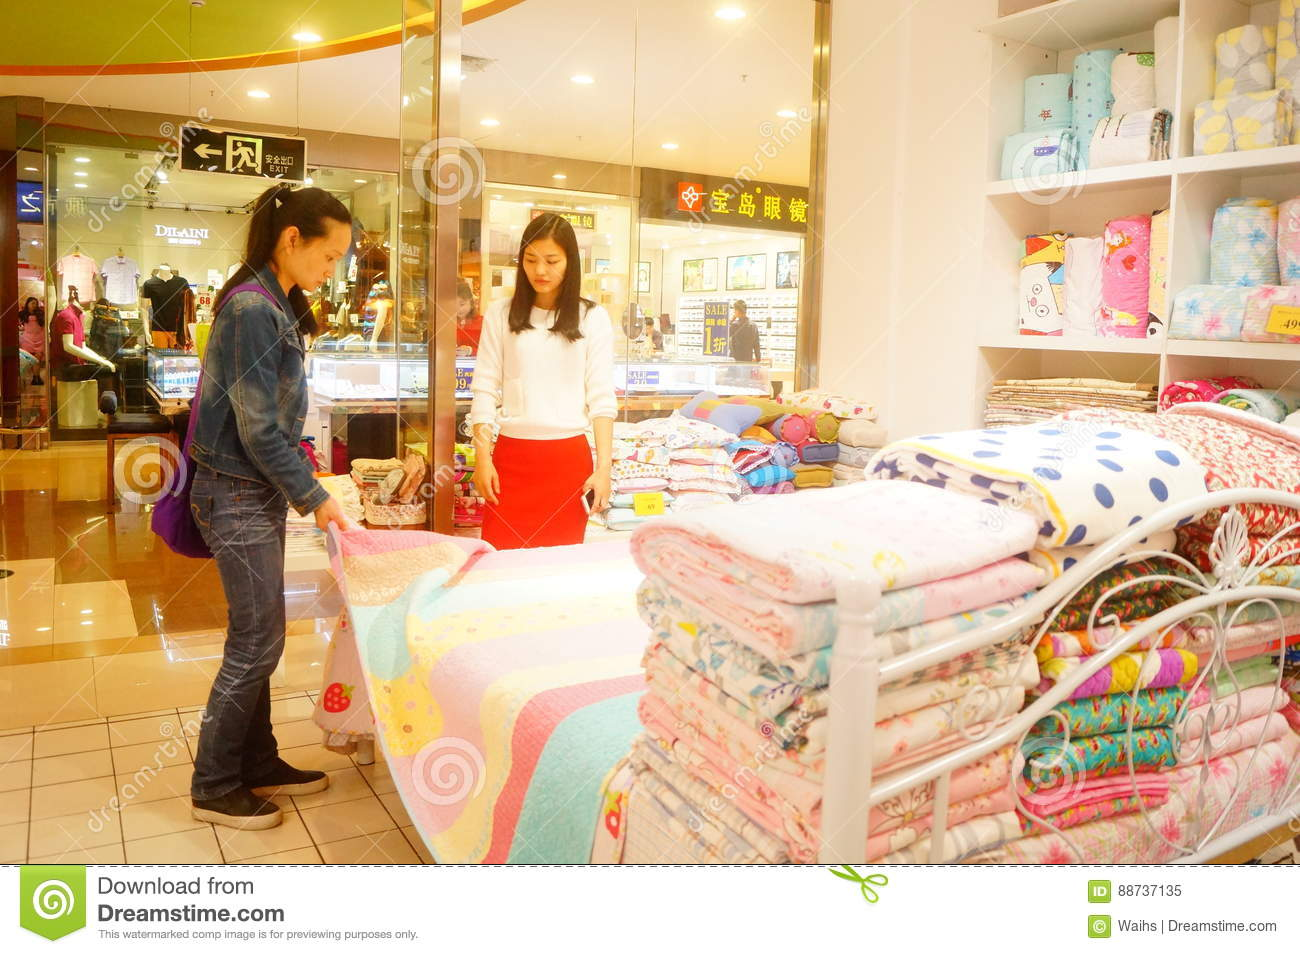 Shenzhen, China: women are buying bedding and other bedding